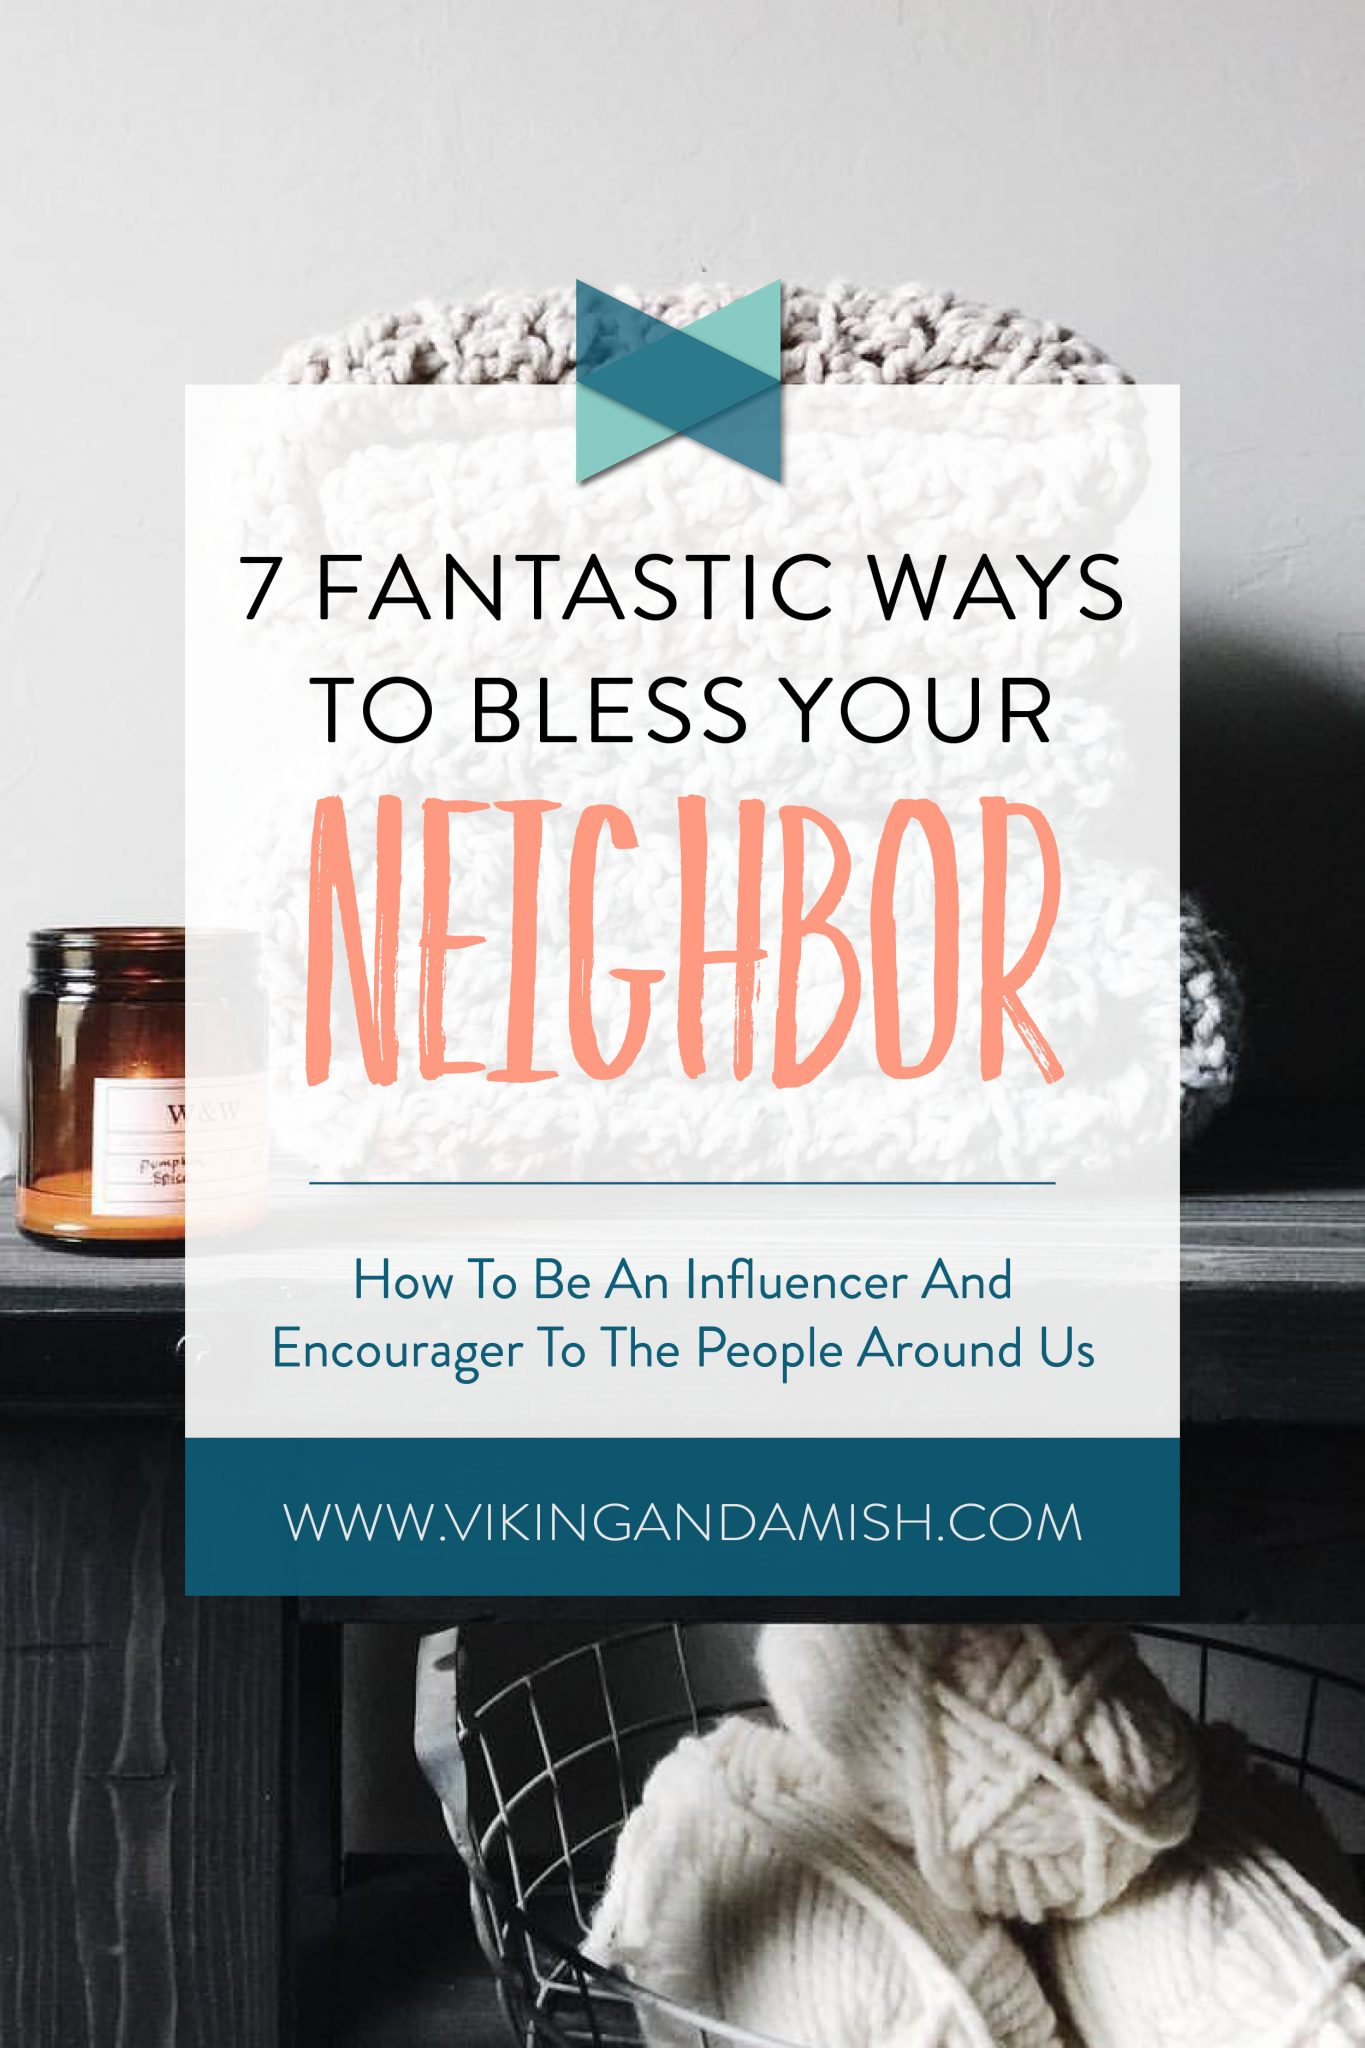 Take Jesus' command about loving your neighbor literal and check out these seven fantastic ways to bless your neighbor; A post was made to inspire kindness and unexpected acts of love towards those who live around us | www.vikingandamish.com